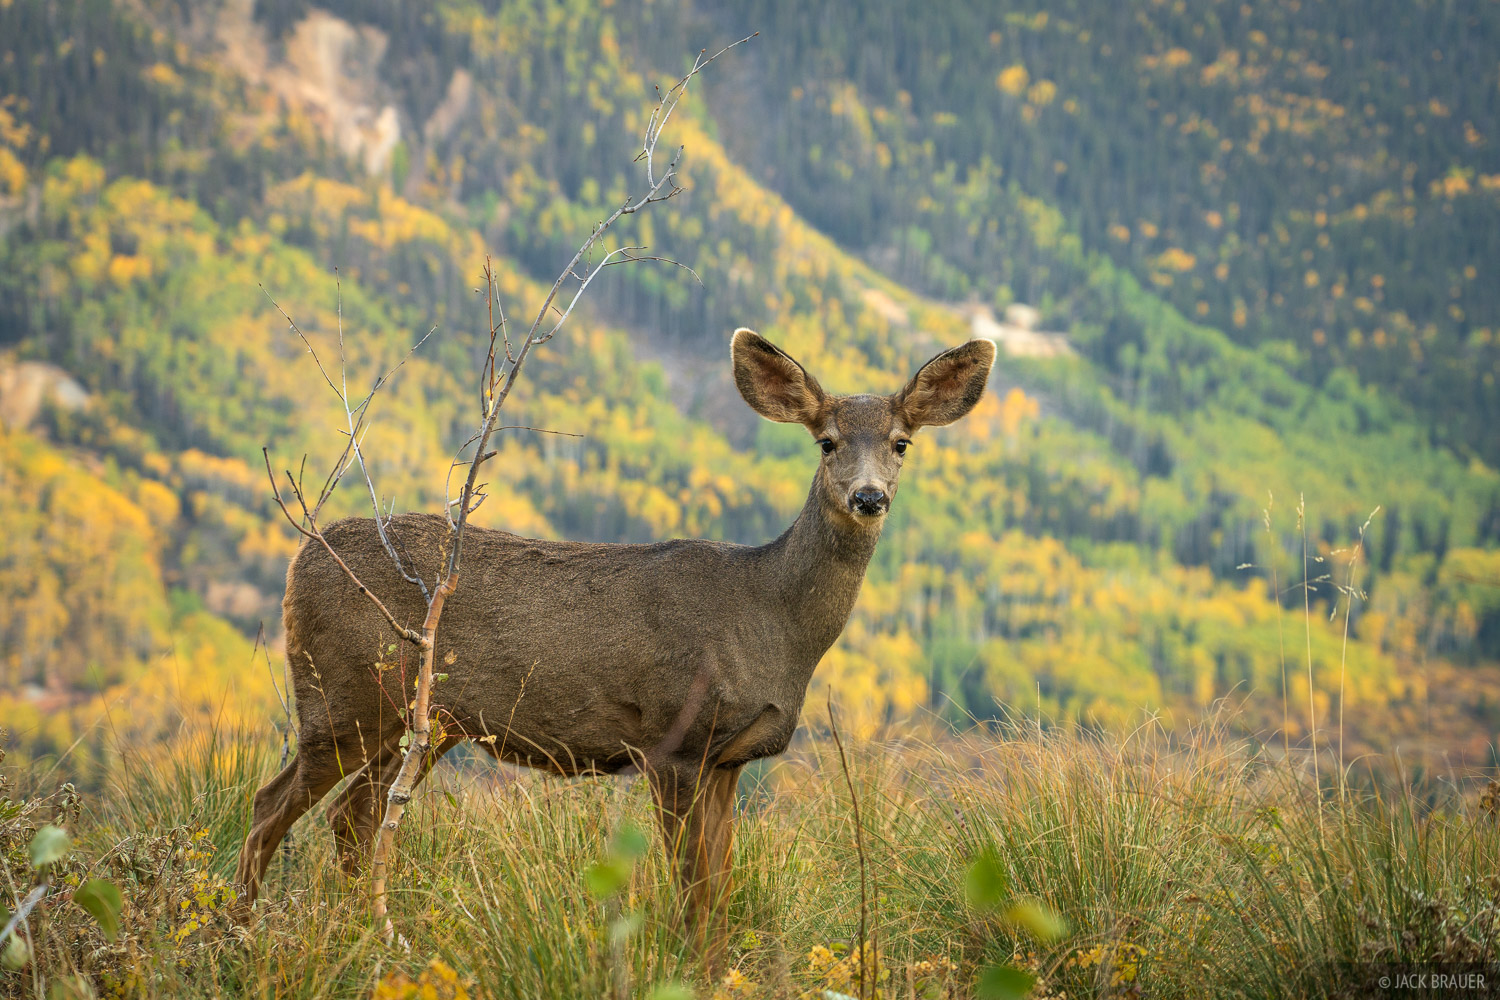 A deer calmly and curiously observes the photographer on an autumn day in the San Juan Mountains.